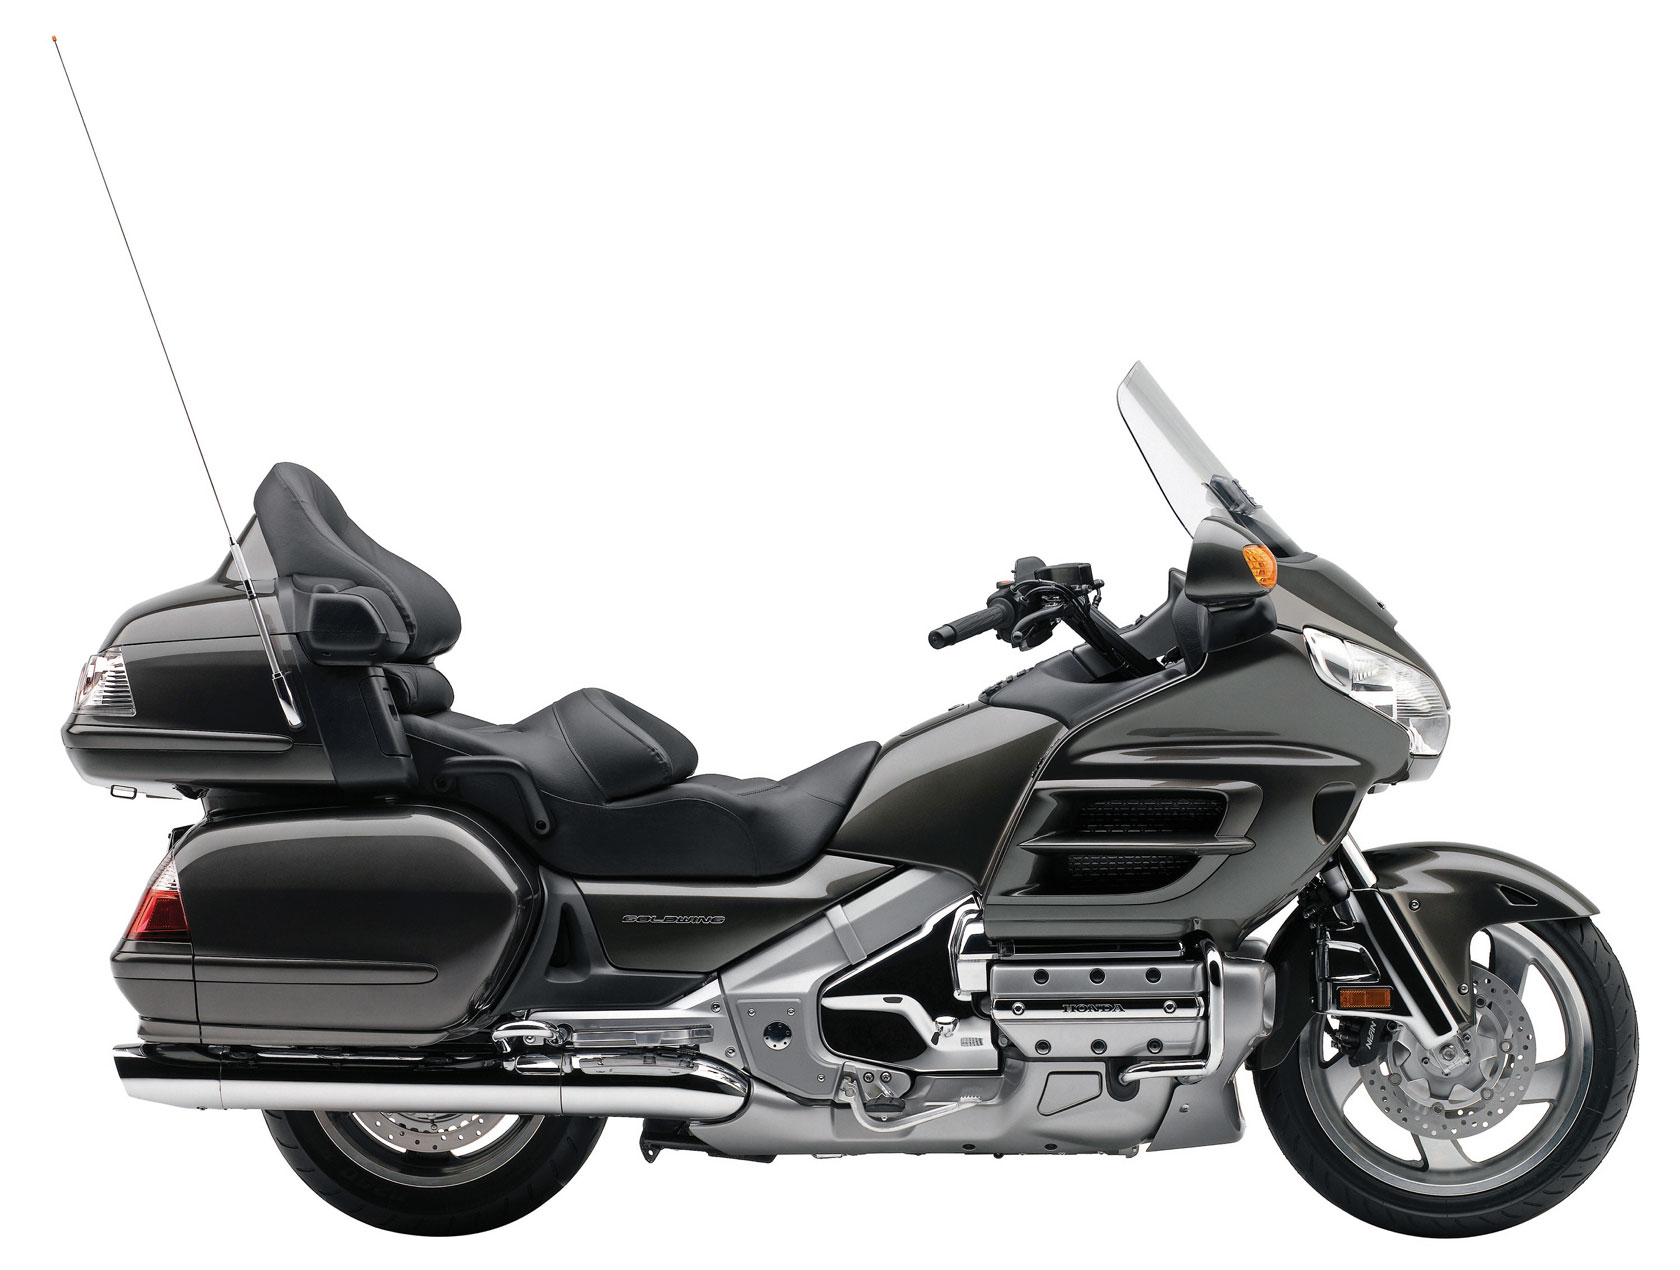 2009 Honda GL1800 (Audio/Comfort) Gold Wing